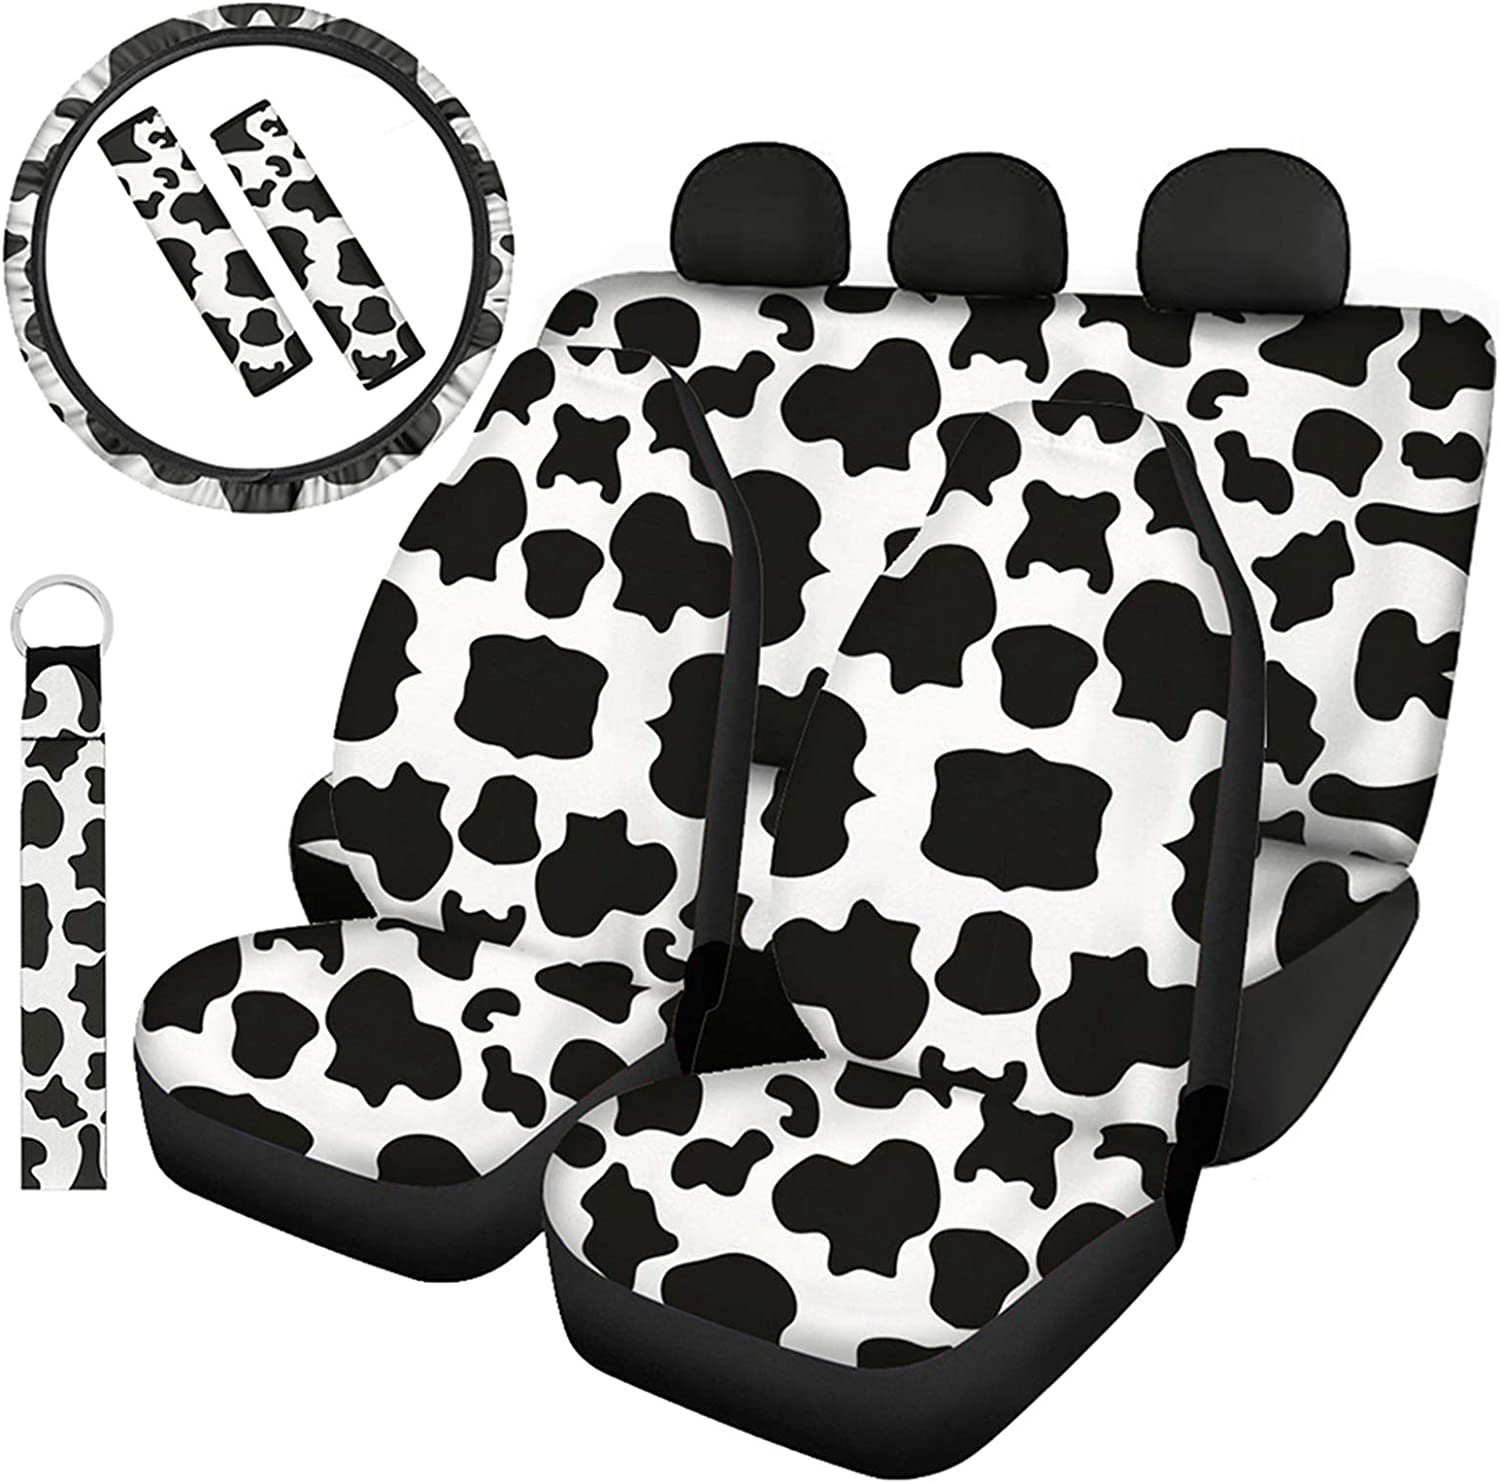 Full Seat Covers for Cars Comfortable Steering Wheel Cover ...